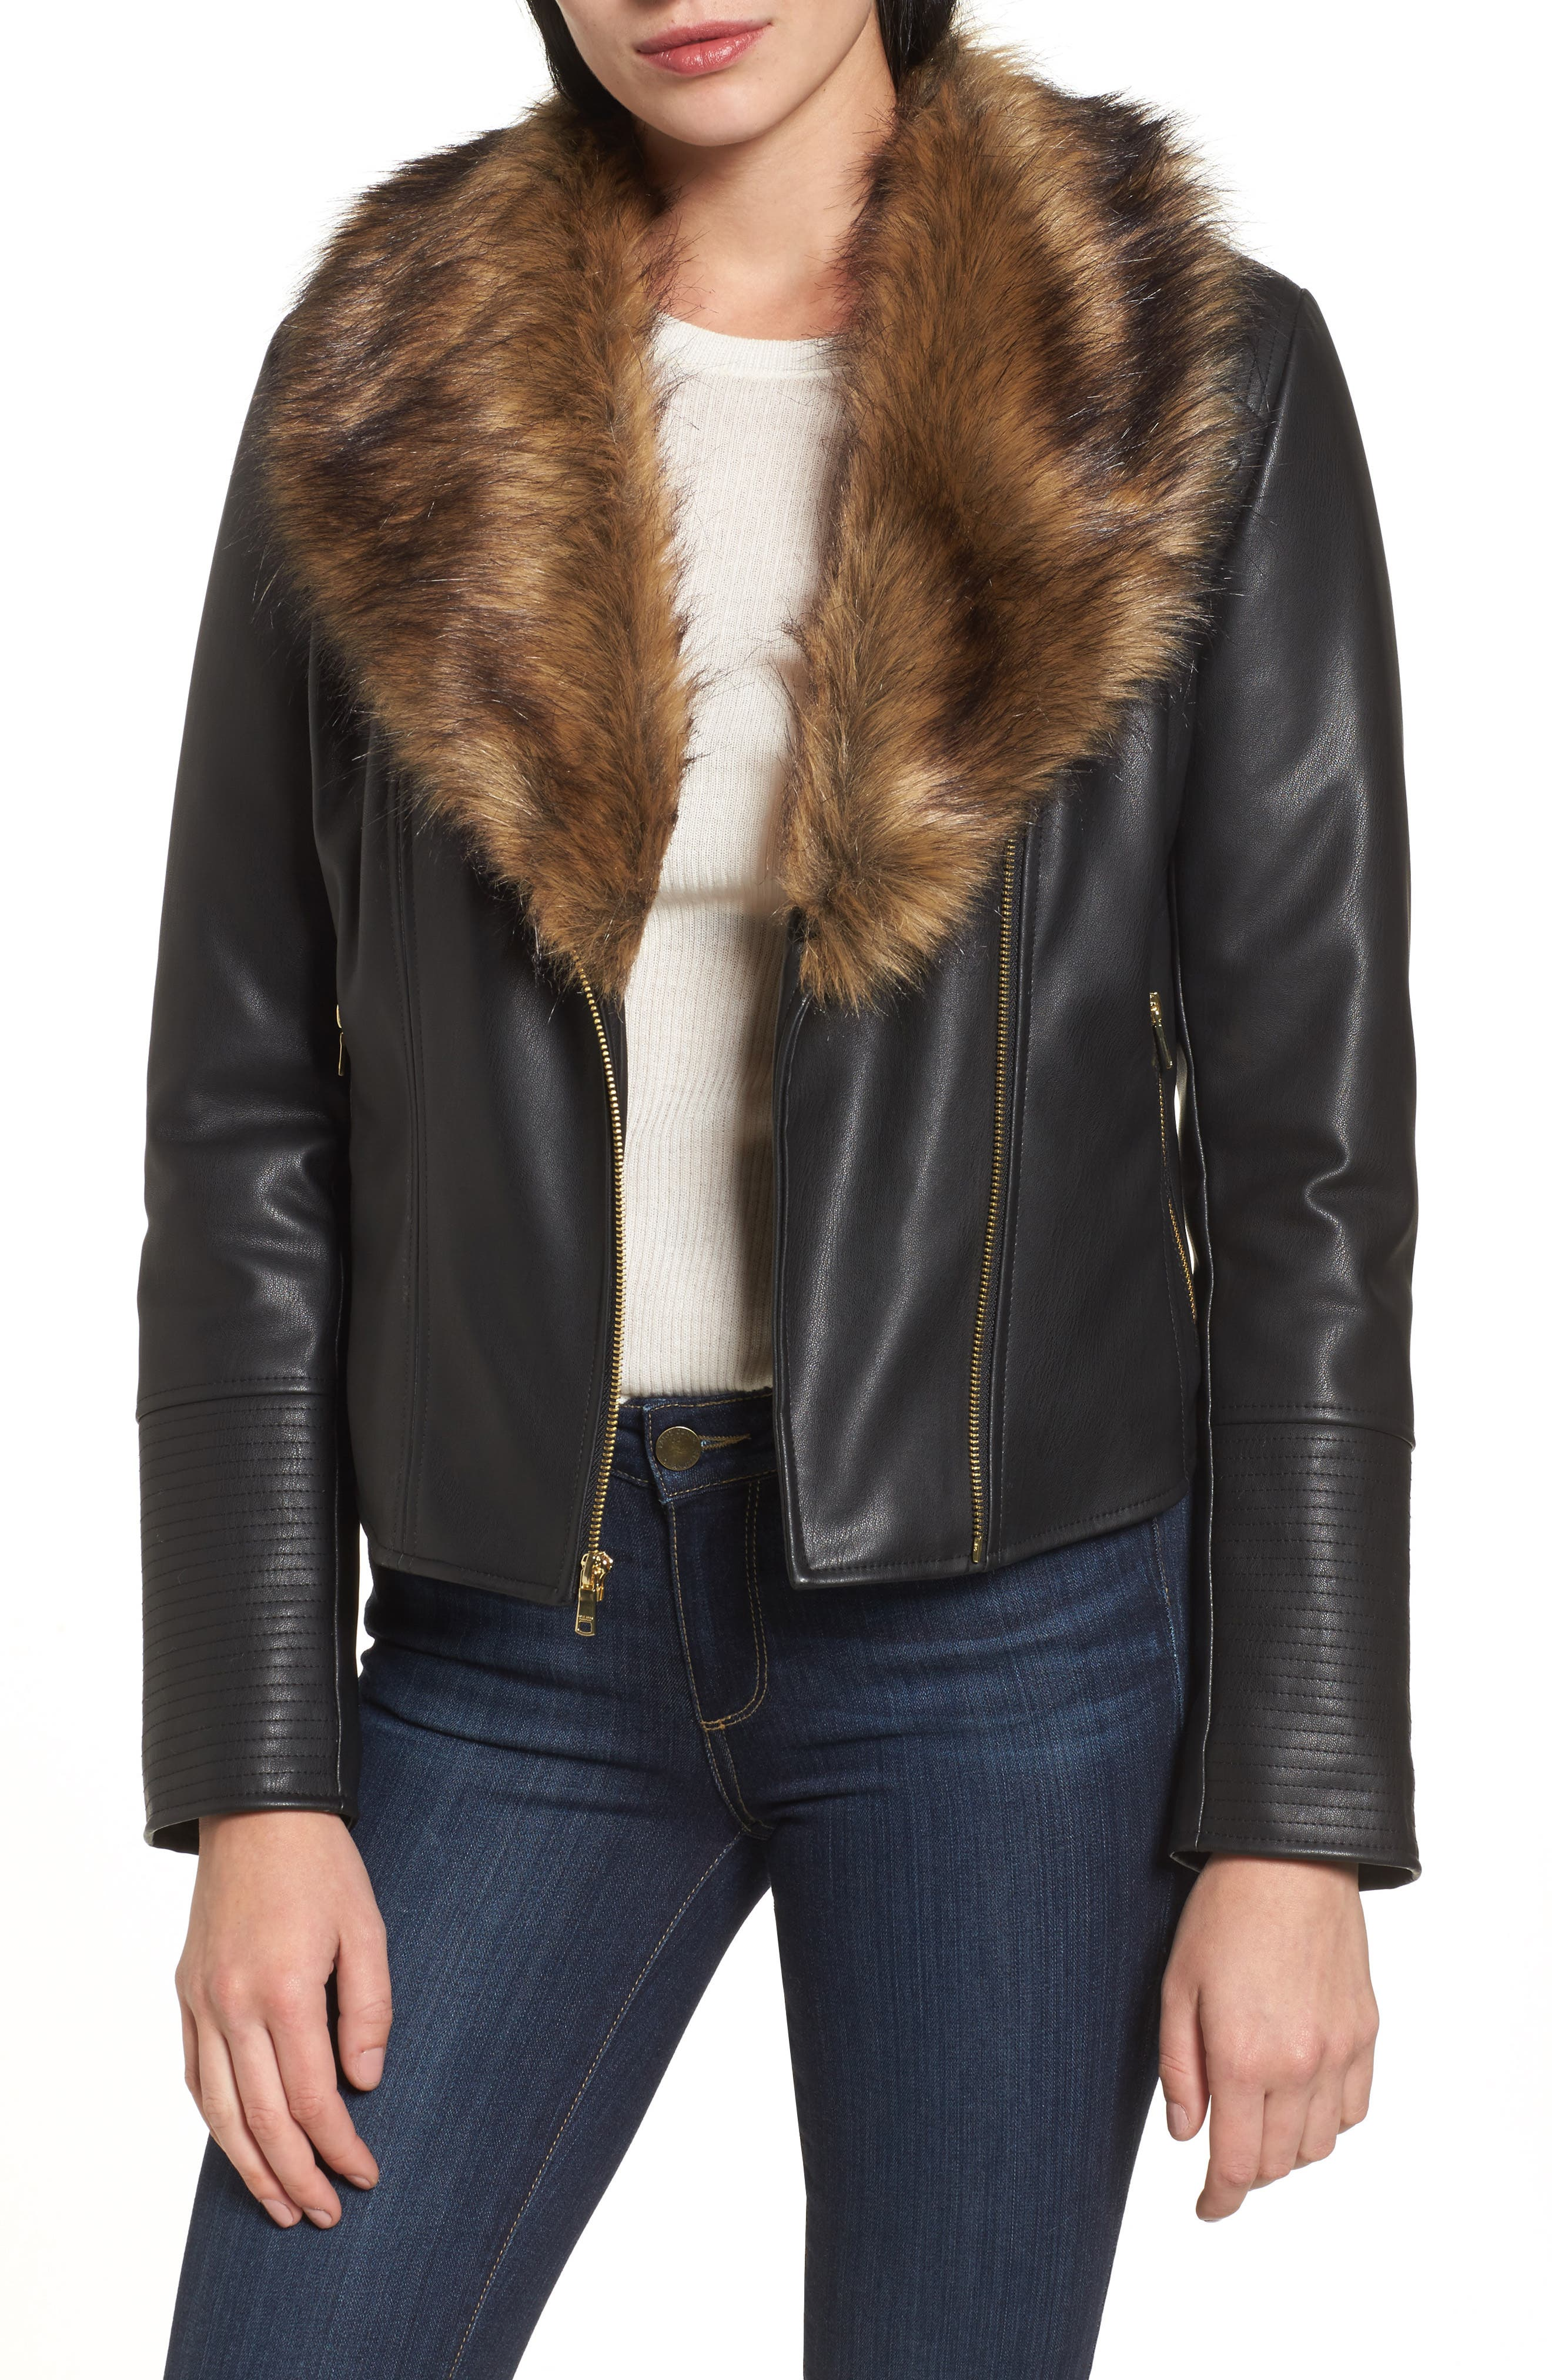 Alternate Image 1 Selected - Cole Haan Signature Faux Leather Jacket with Detachable Faux Fur